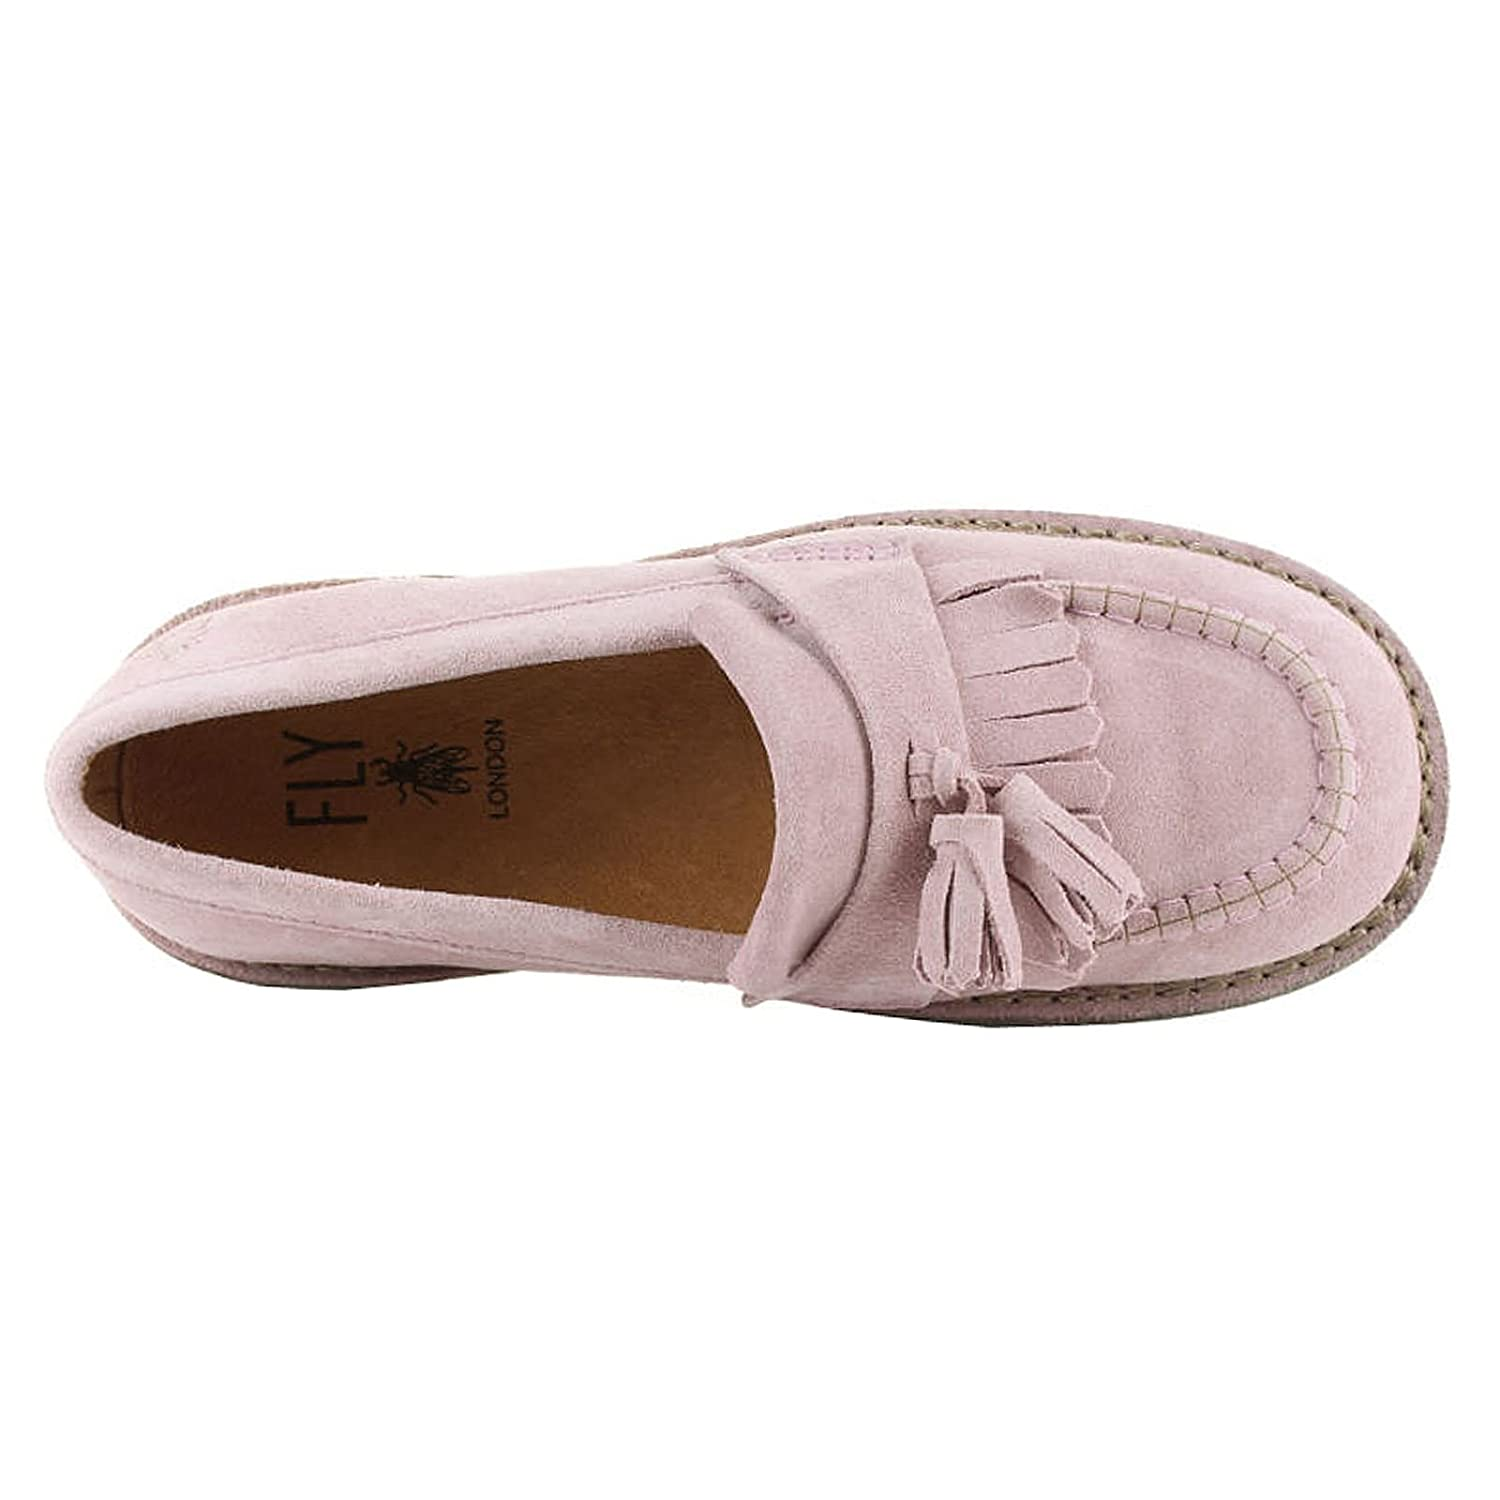 0476f9e4652 Size 7 Fly London Women s Juno Suede Loafers  Amazon.co.uk  Shoes   Bags